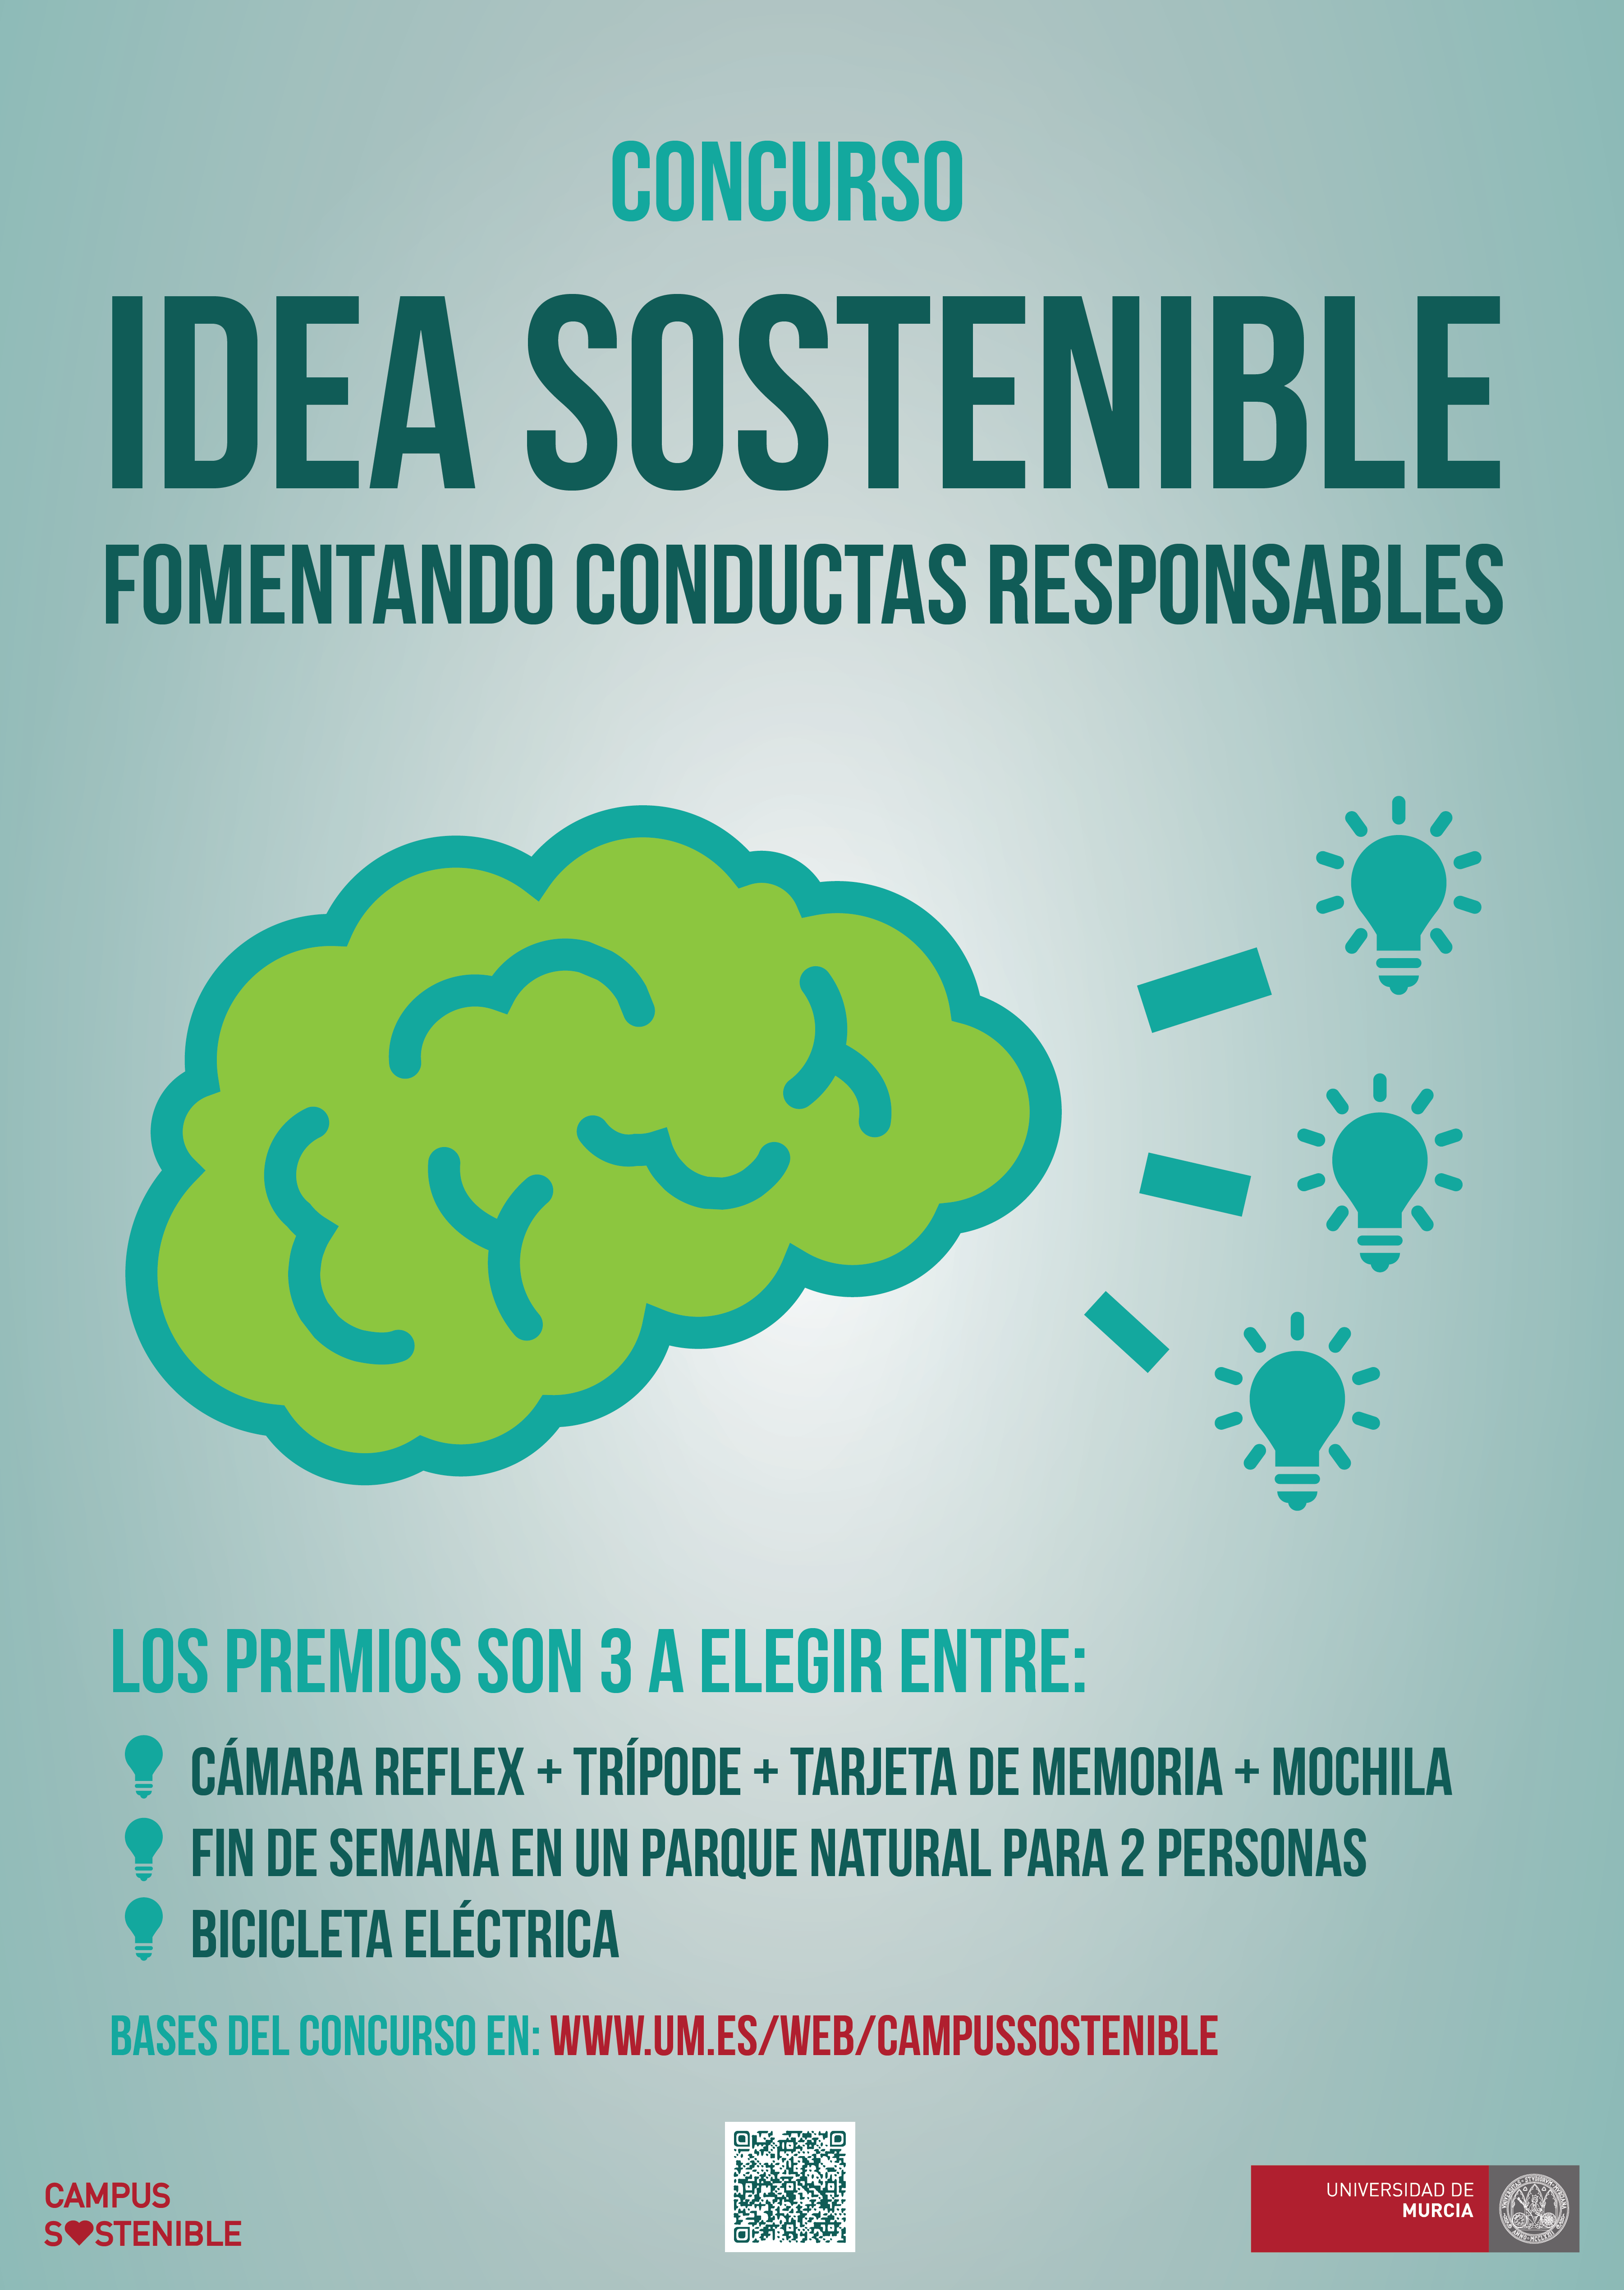 Campus Sostenible. Concurso Idea Sostenible: fomentando conductas responsables